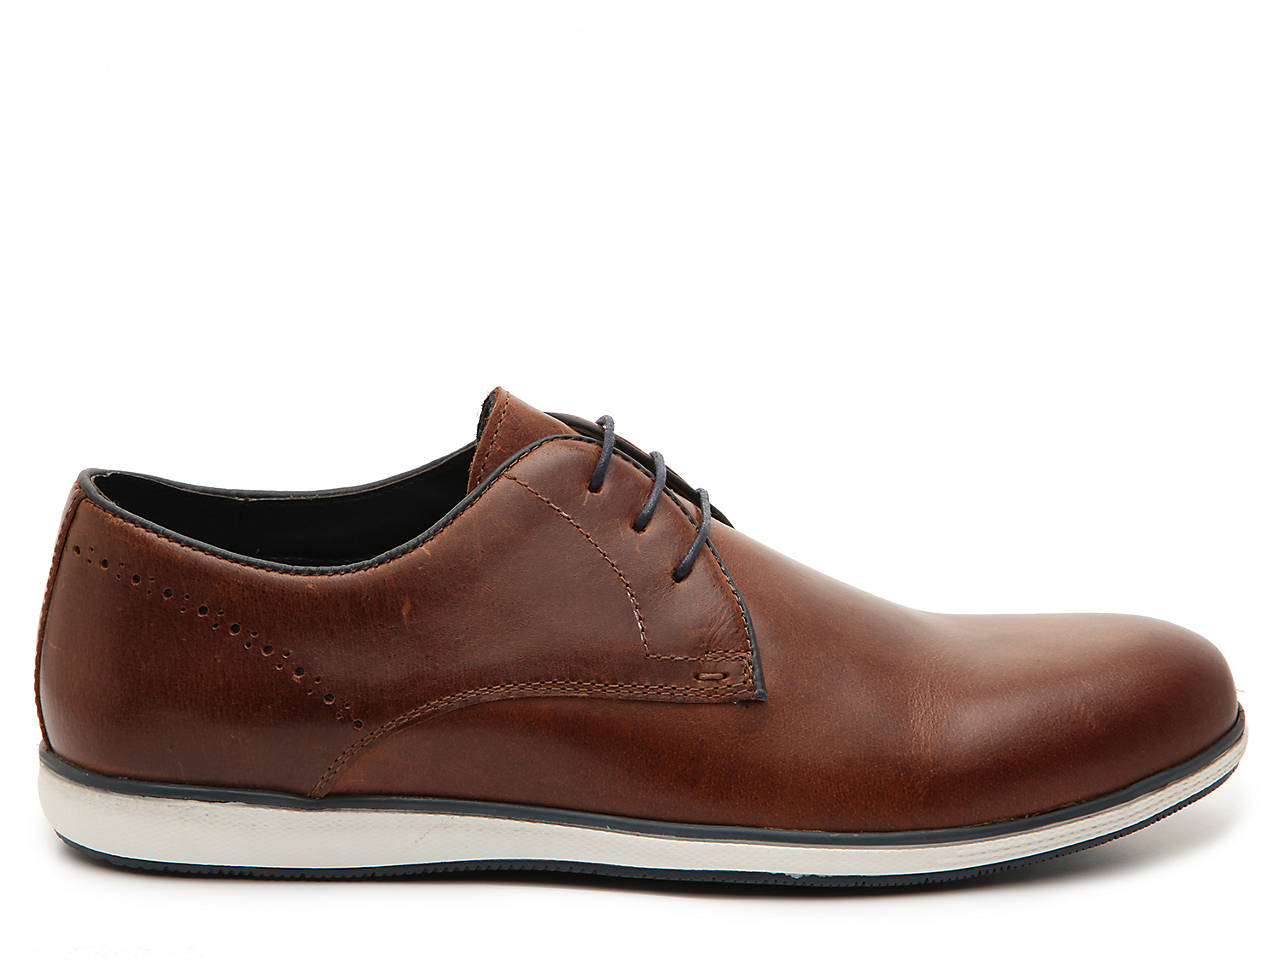 0f009fa9293a Home · Men's Shoes · Oxfords; Leather Oxford. previous. Leather Oxford. next